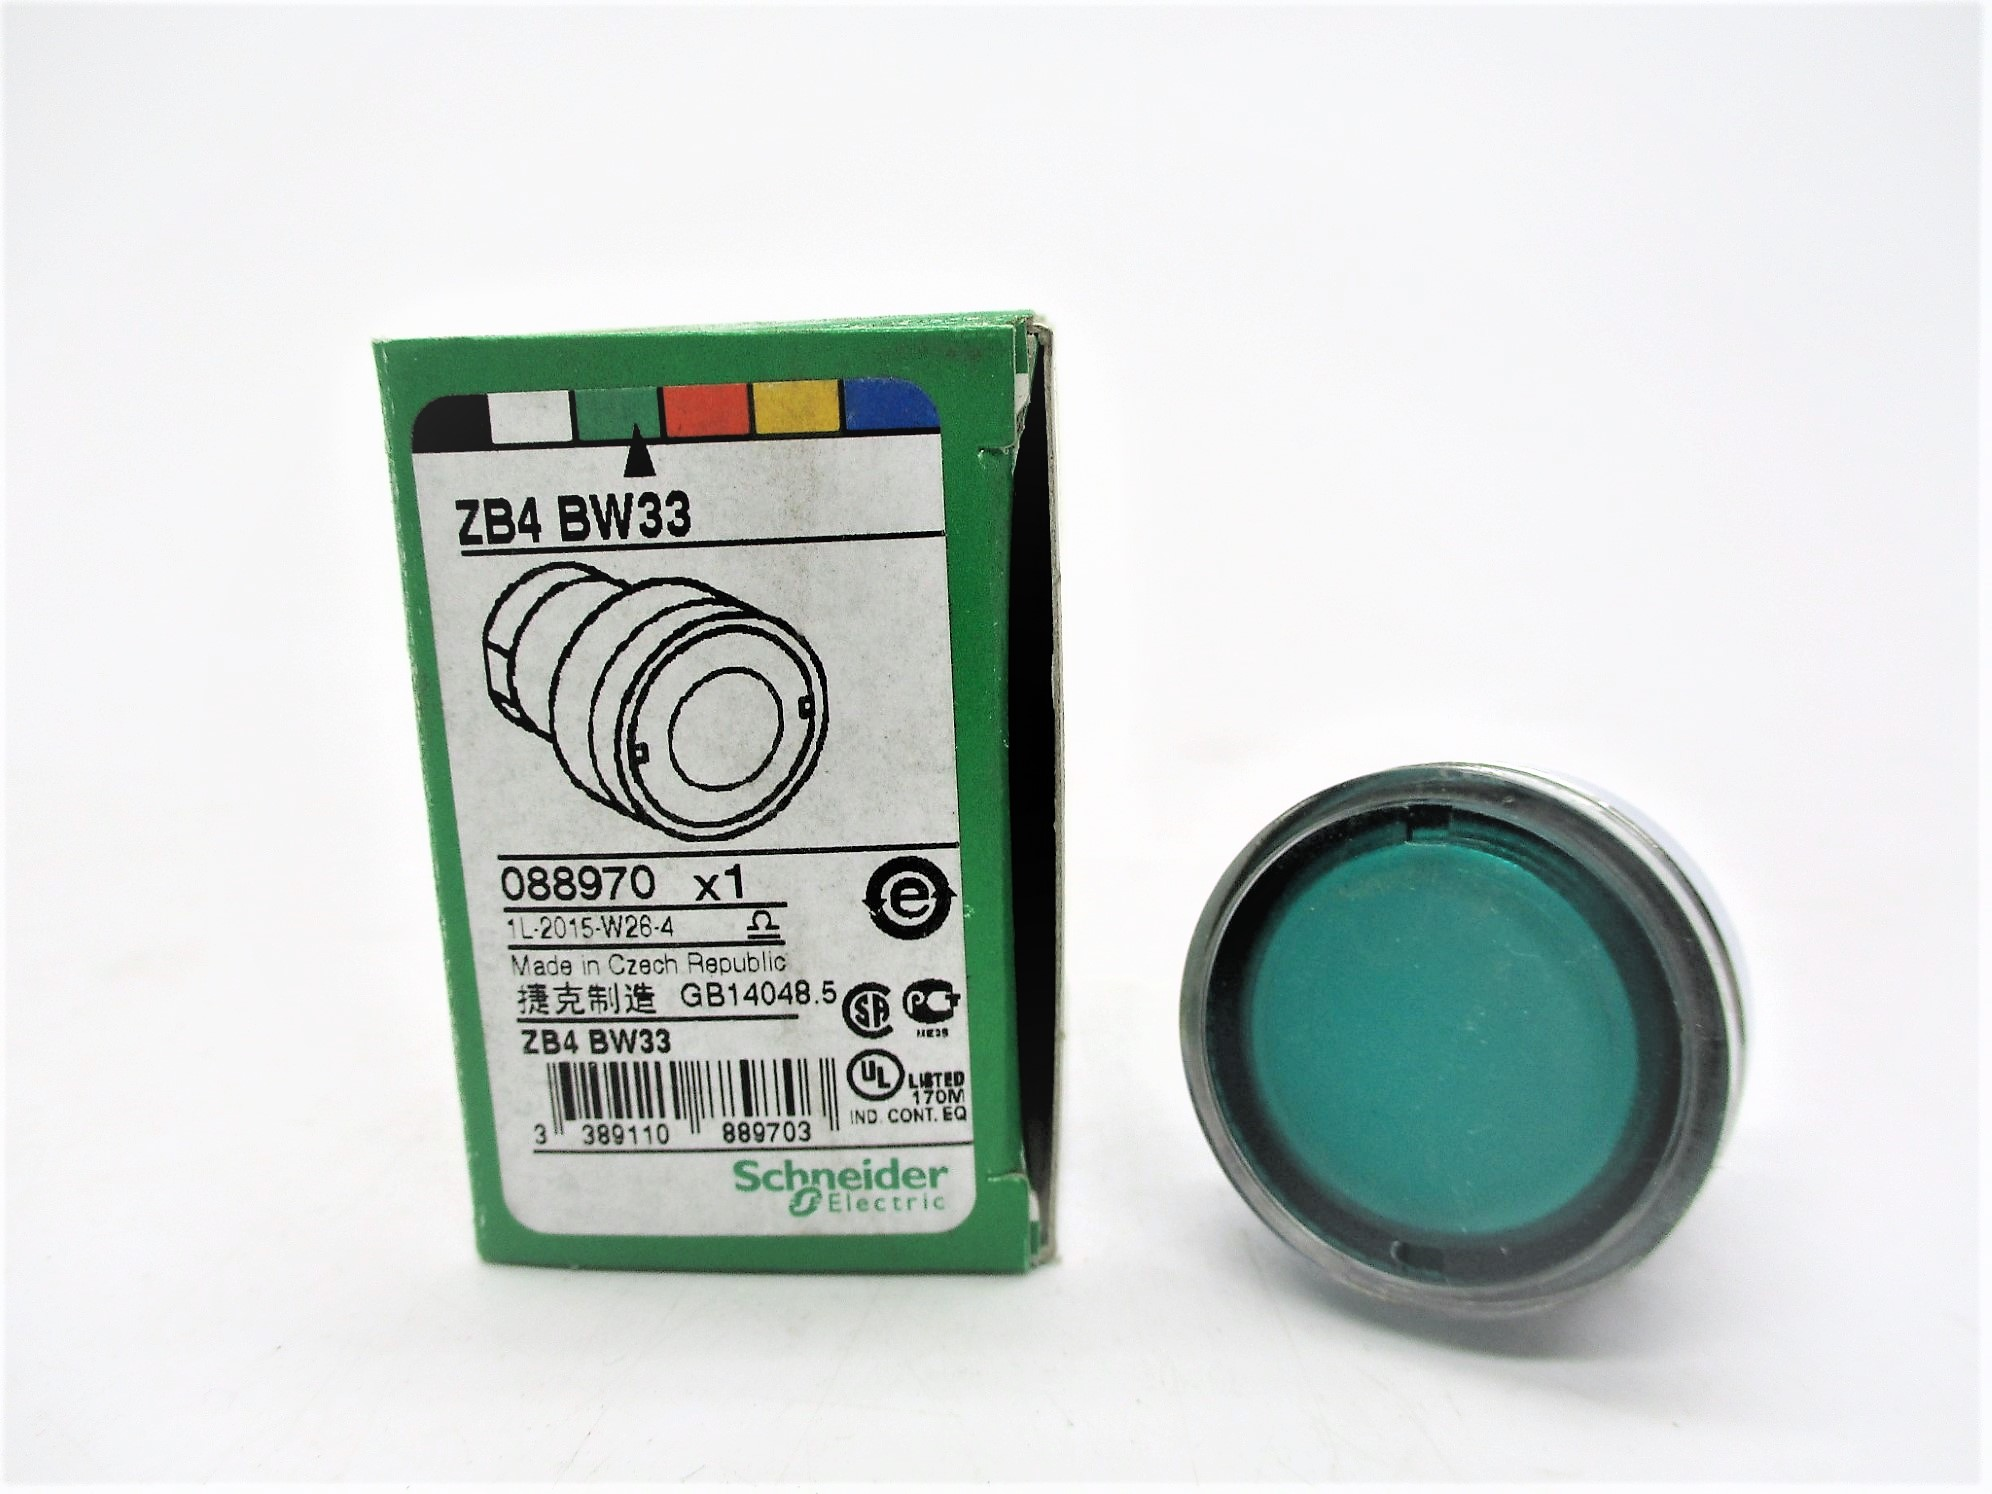 SCHNEIDER ELECTRIC ZB4BW33 Push Button *New In Box* Ships Same Day